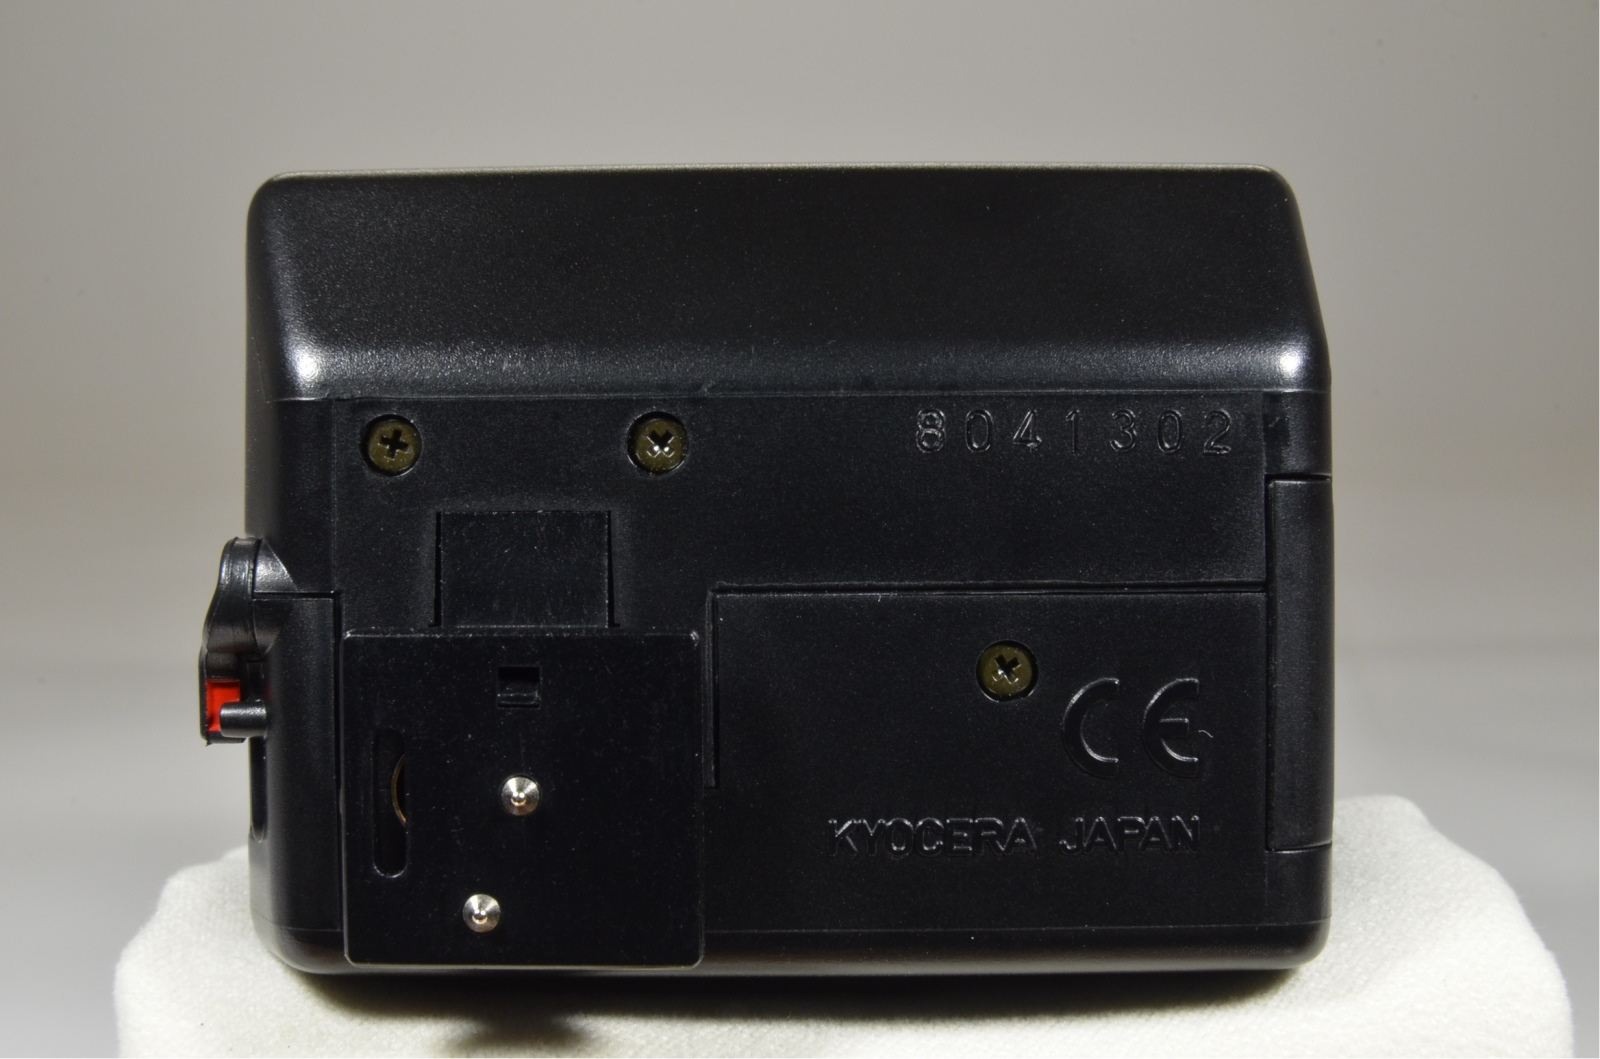 contax flash tla200 black for g1, g2 from japan